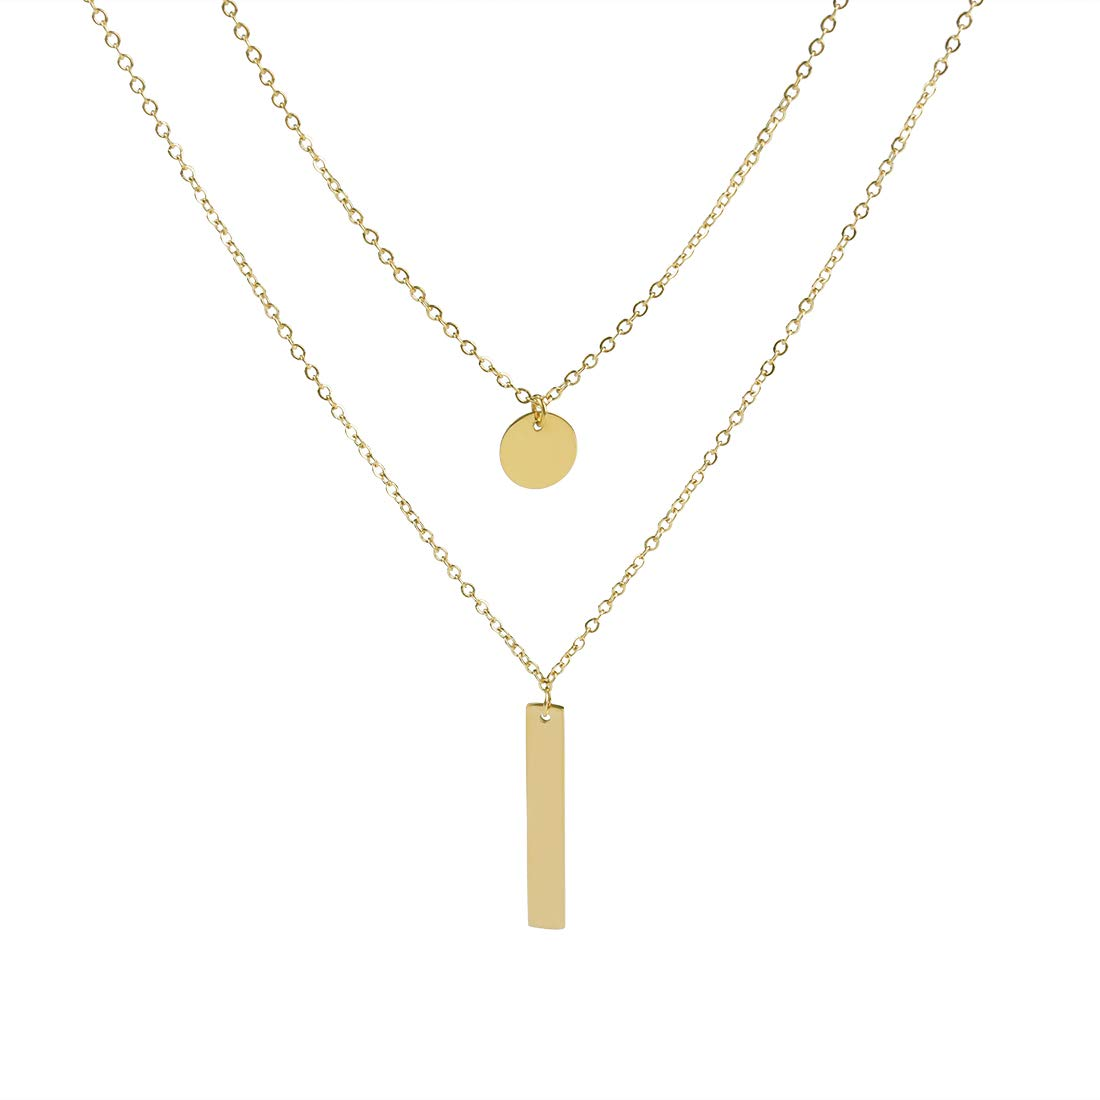 f121456b9c4df HYEUNA Gold Tone Layered Necklace Charms Disc Coin Bar Pendant Y ...